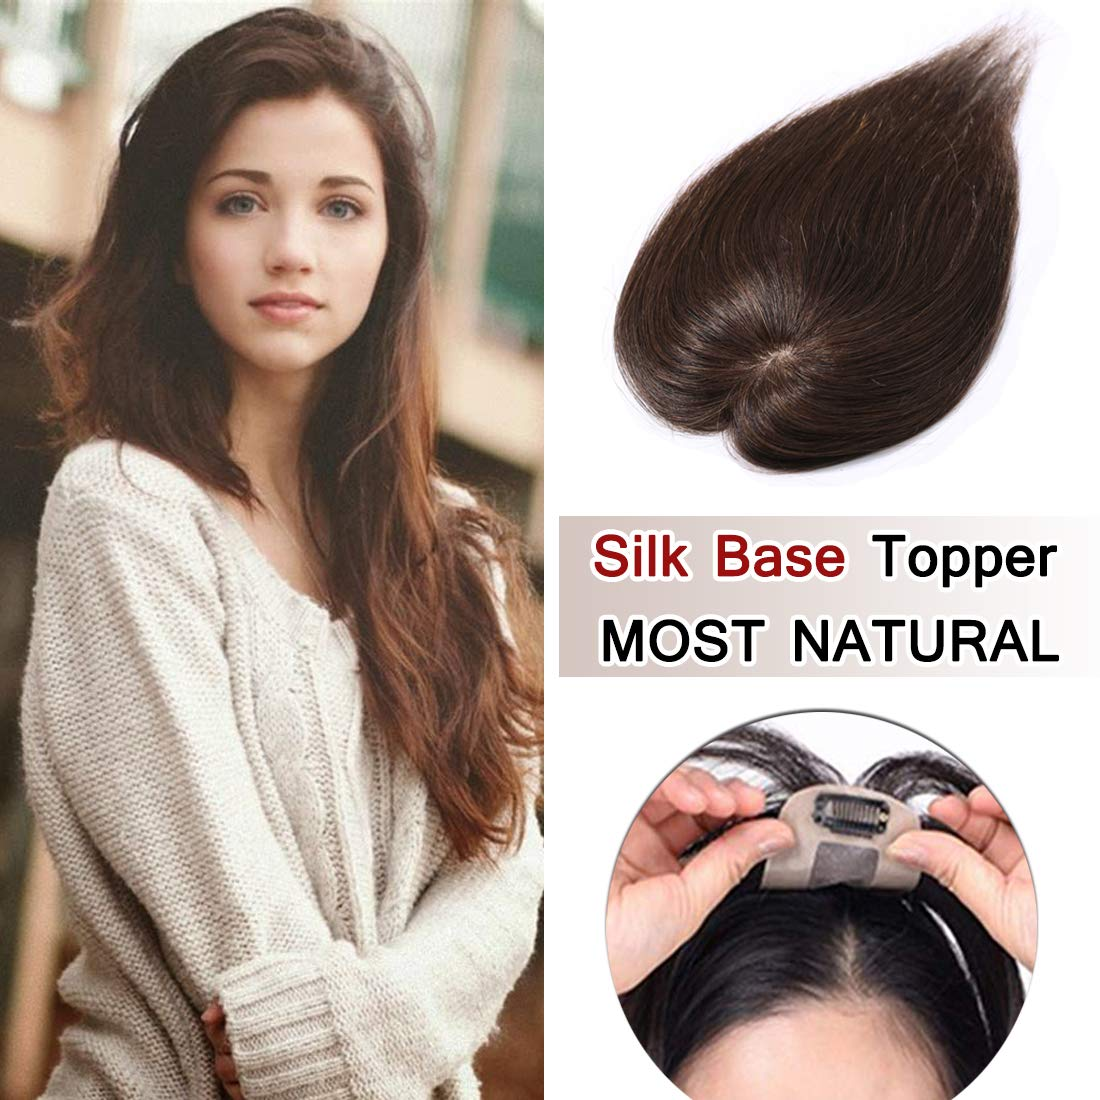 SEGO 100% Density Top Hair Pieces Silk Base Crown Topper Human Hair Clip in Hair Toppers Top Hairpieces for Women with Thinning Hair Gray Hair/Hair Loss#04 Brown 10 Inch 20g by SEGO